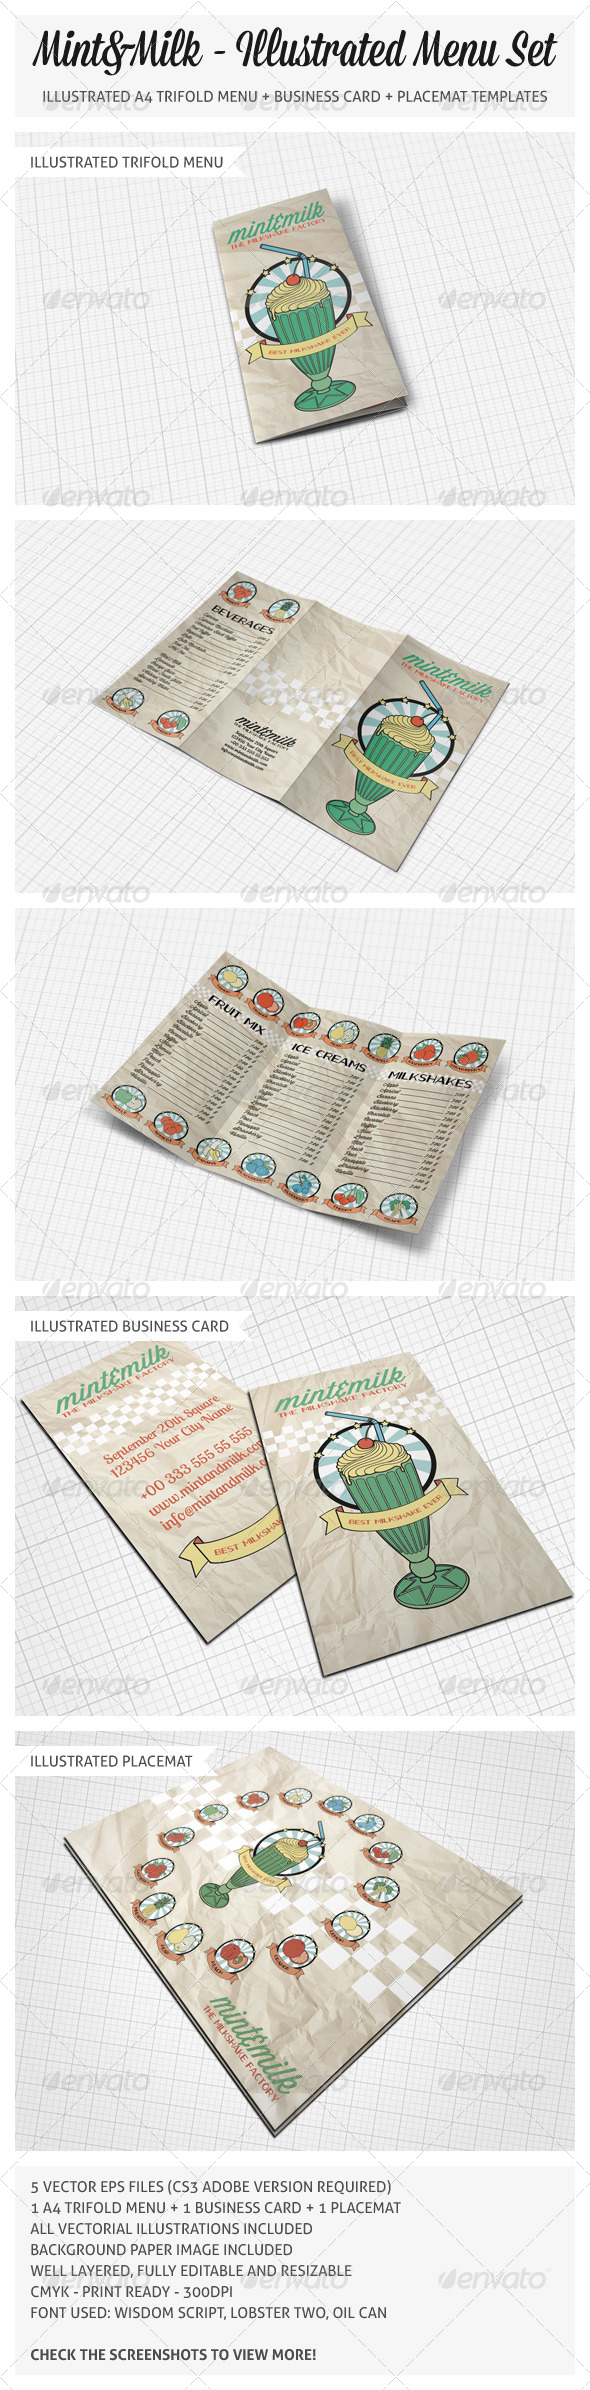 GraphicRiver Illustrated Trifold Menu Set 5010965